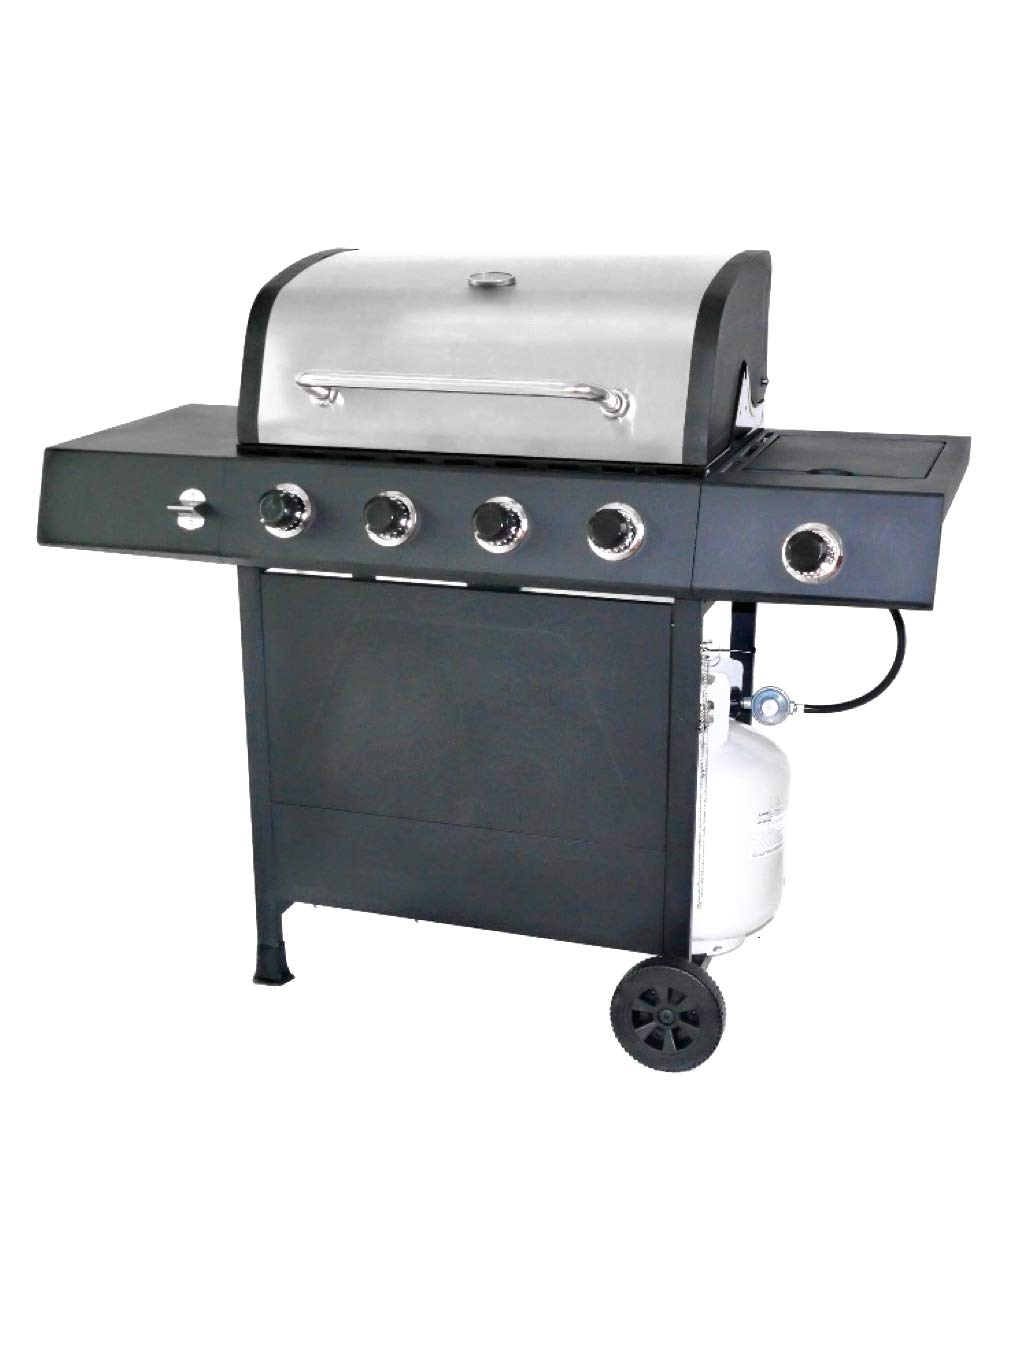 RevoAce 4-Burner LP Gas Grill with Side Burner, Stainless Steel by RevoAce